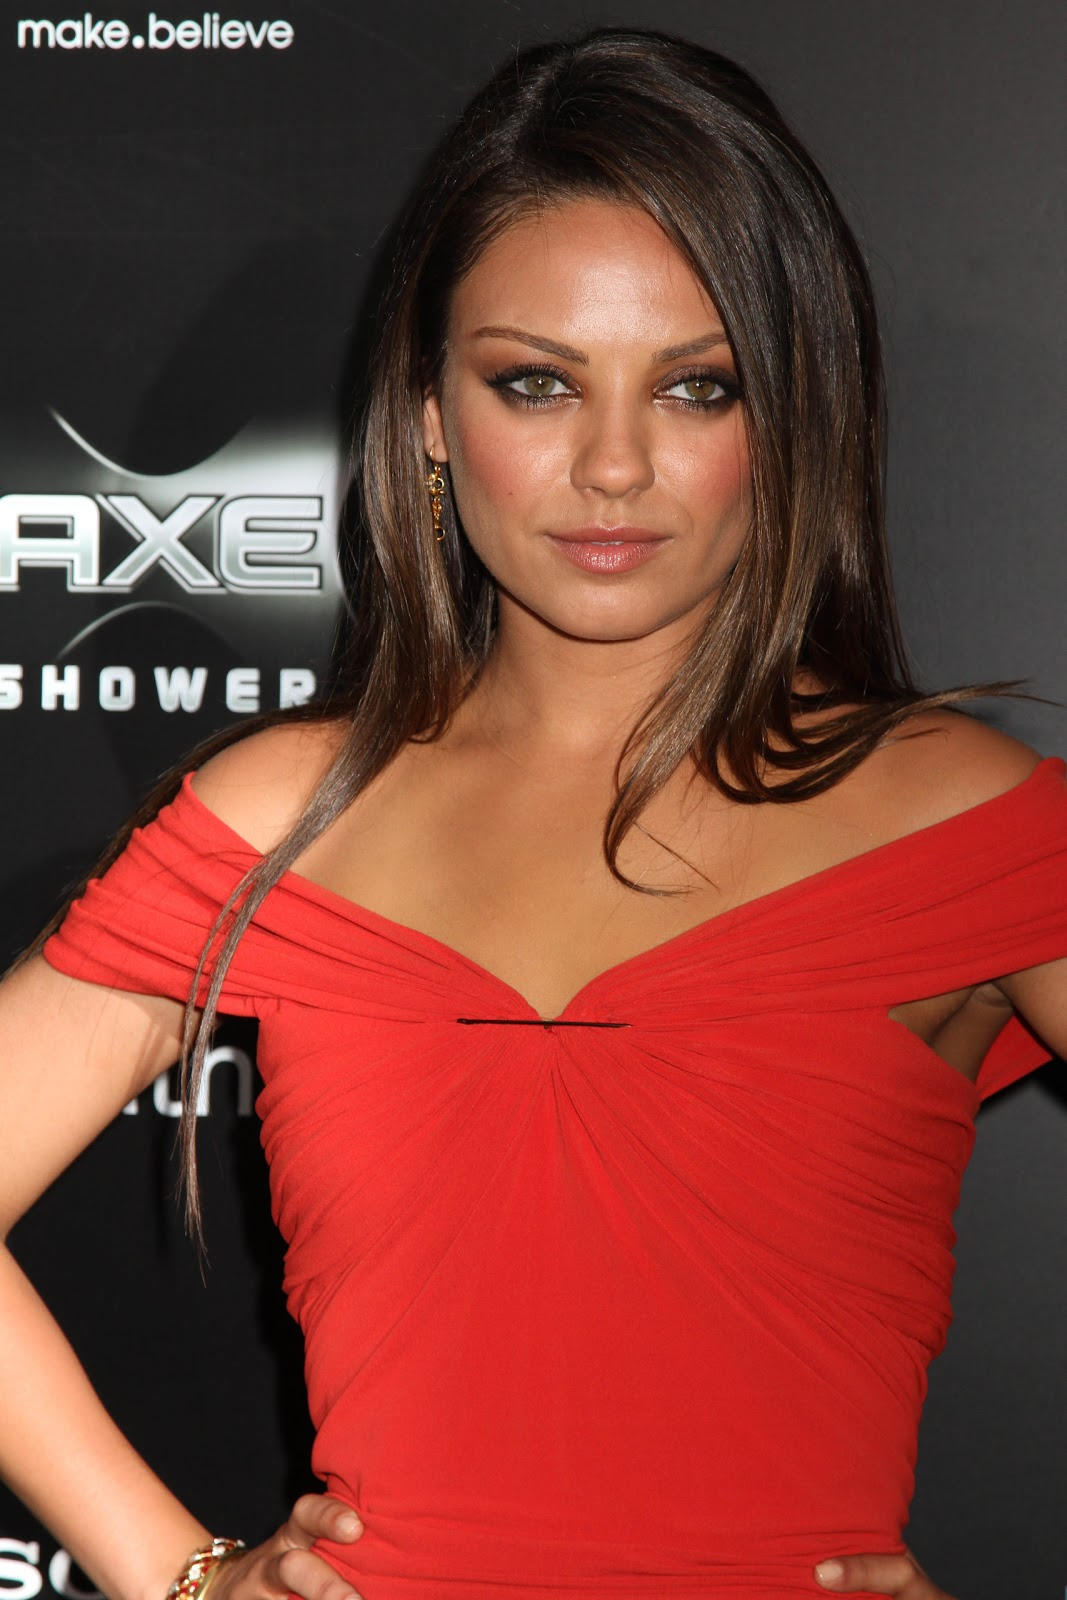 Mila Kunis in Red Dress